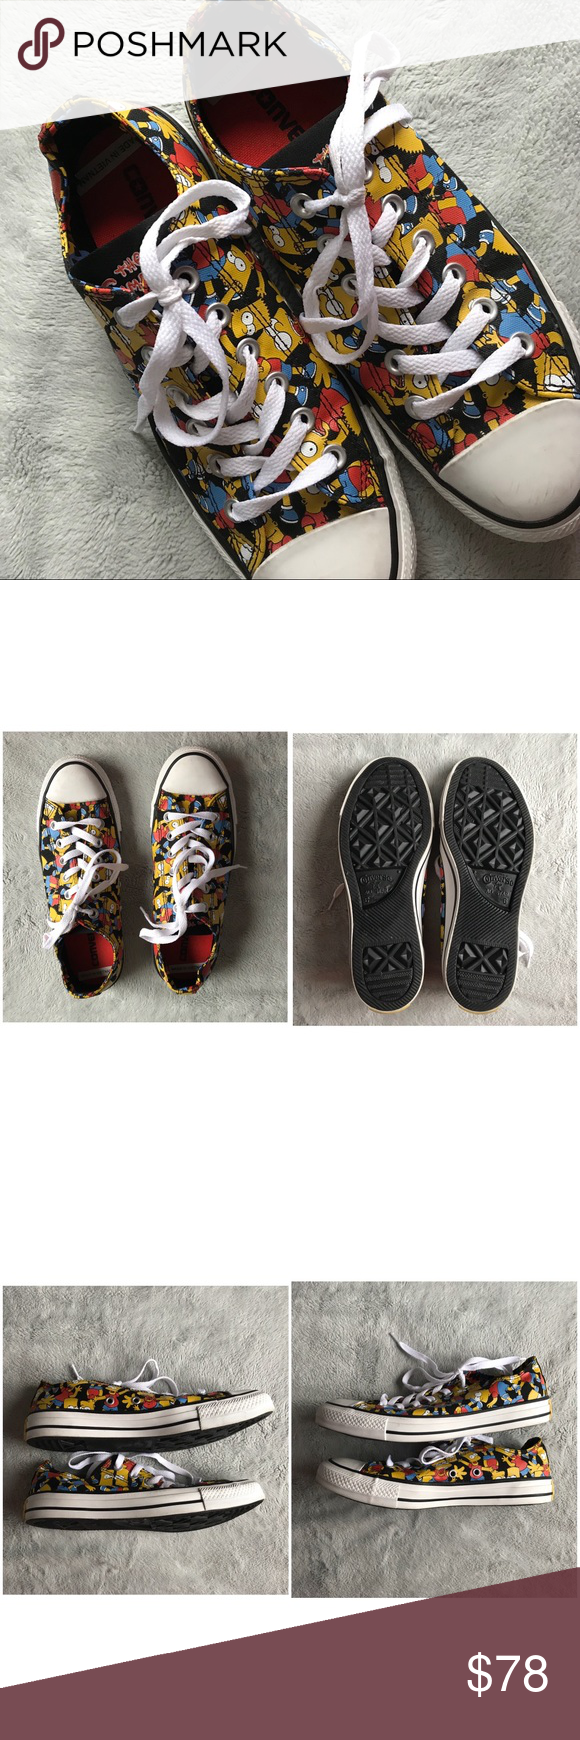 97987e29e3f5 Converse The Simpsons Chuck Taylor Bart Sneakers Great used condition.  Low-top sneakers by Converse x The Simpsons in black with amazing allover  red